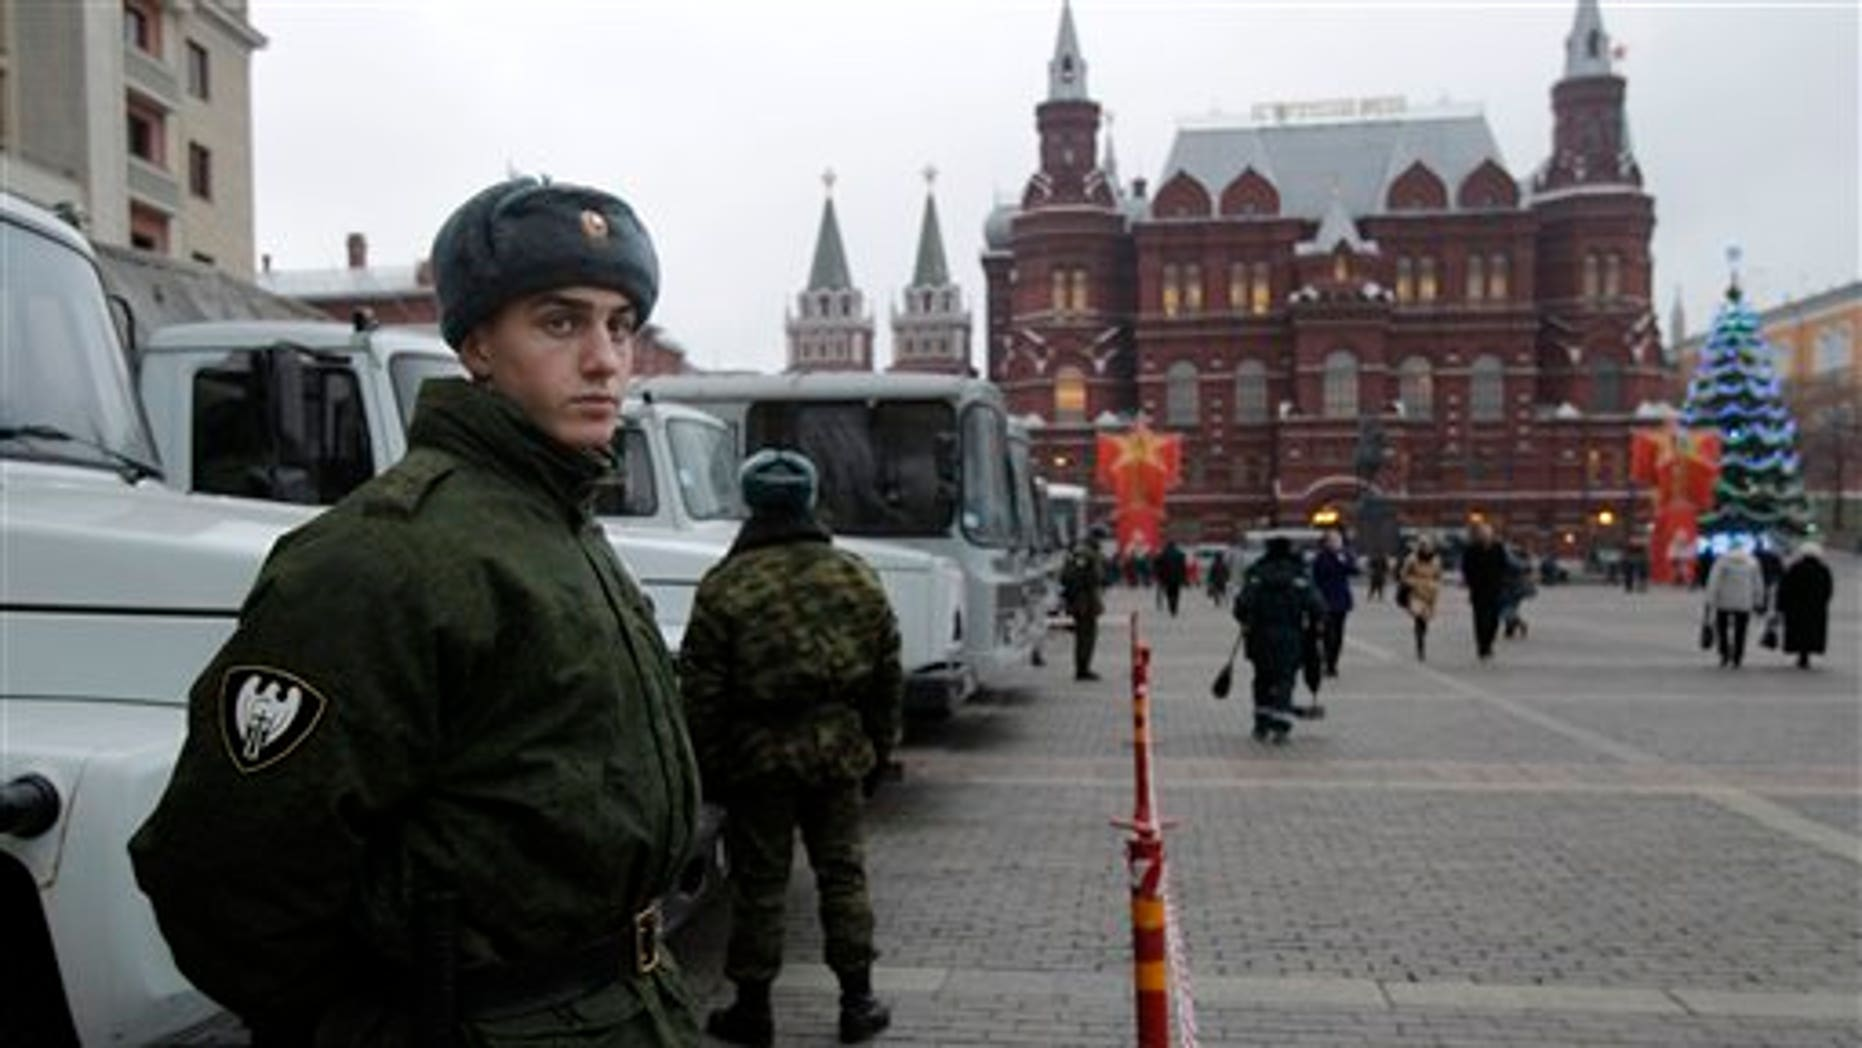 Dec. 9: Russian police troops patrol near Red Square in central Moscow ahead of a massive opposition rally scheduled for Saturday.